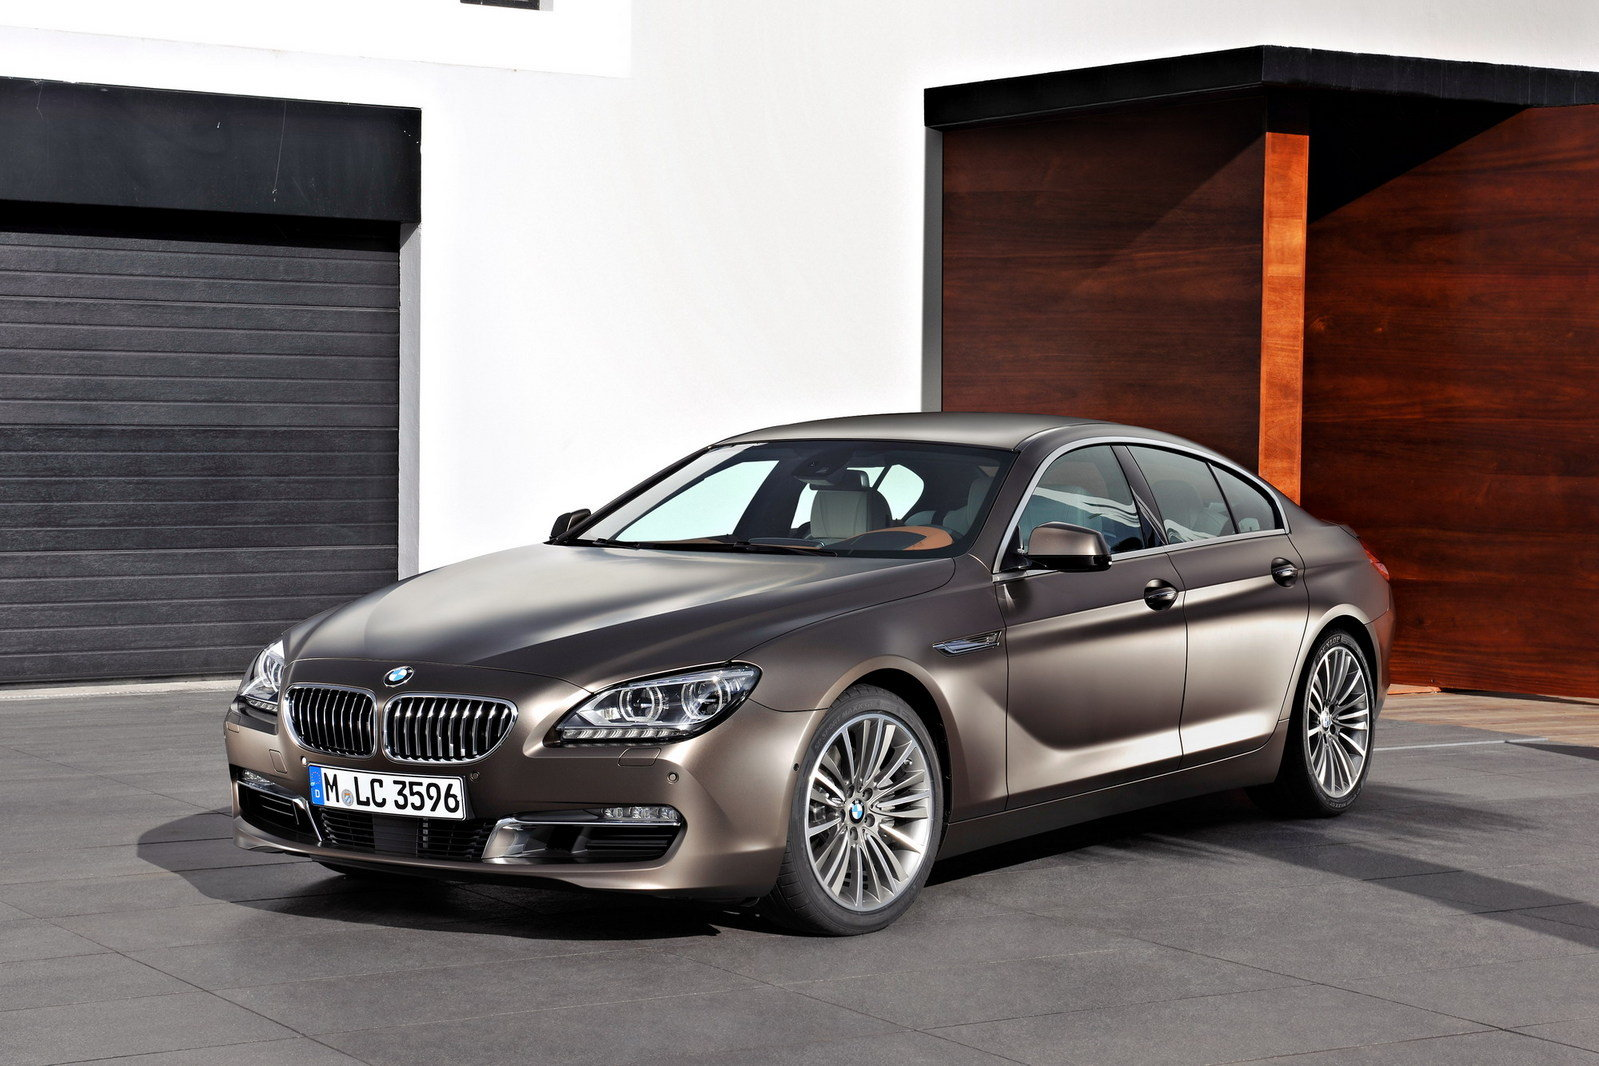 2010 Bmw 650i >> 2013 BMW 6-Series Gran Coupe Review - Top Speed